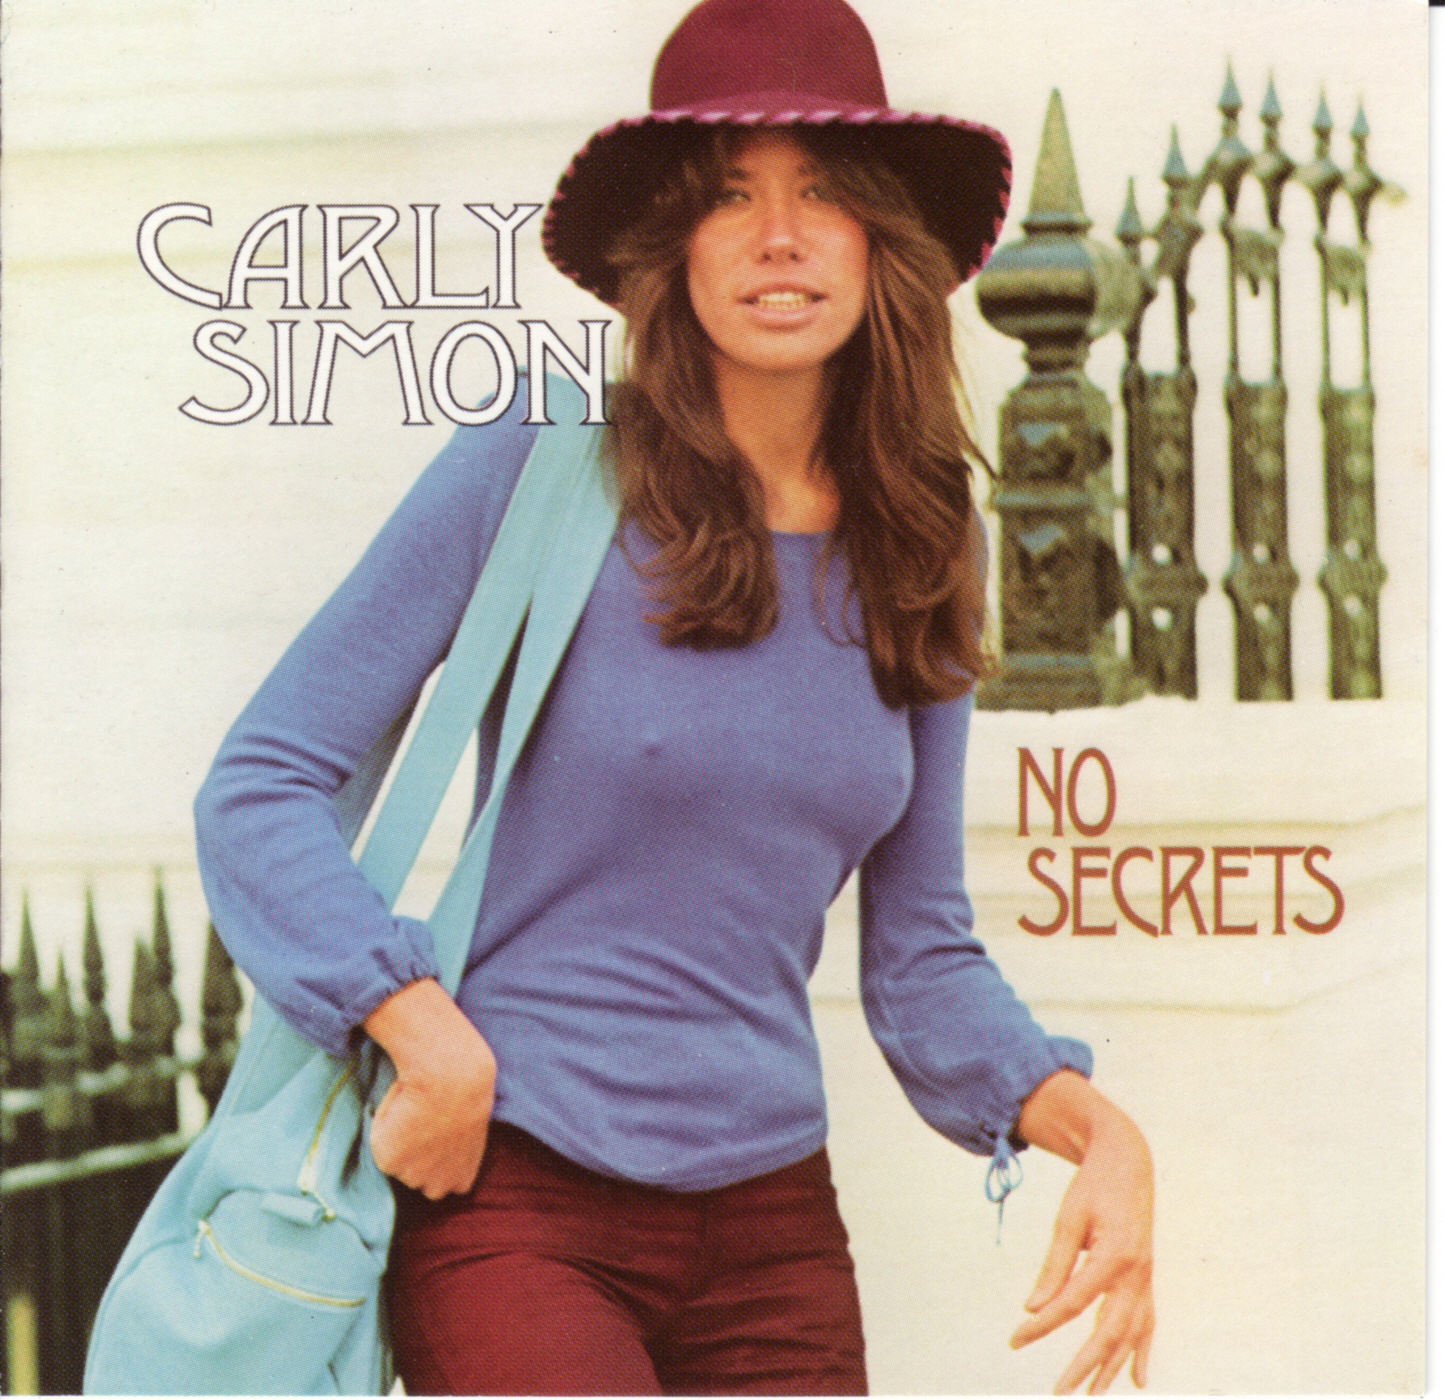 Carly Simon NO SECRETS.jpg